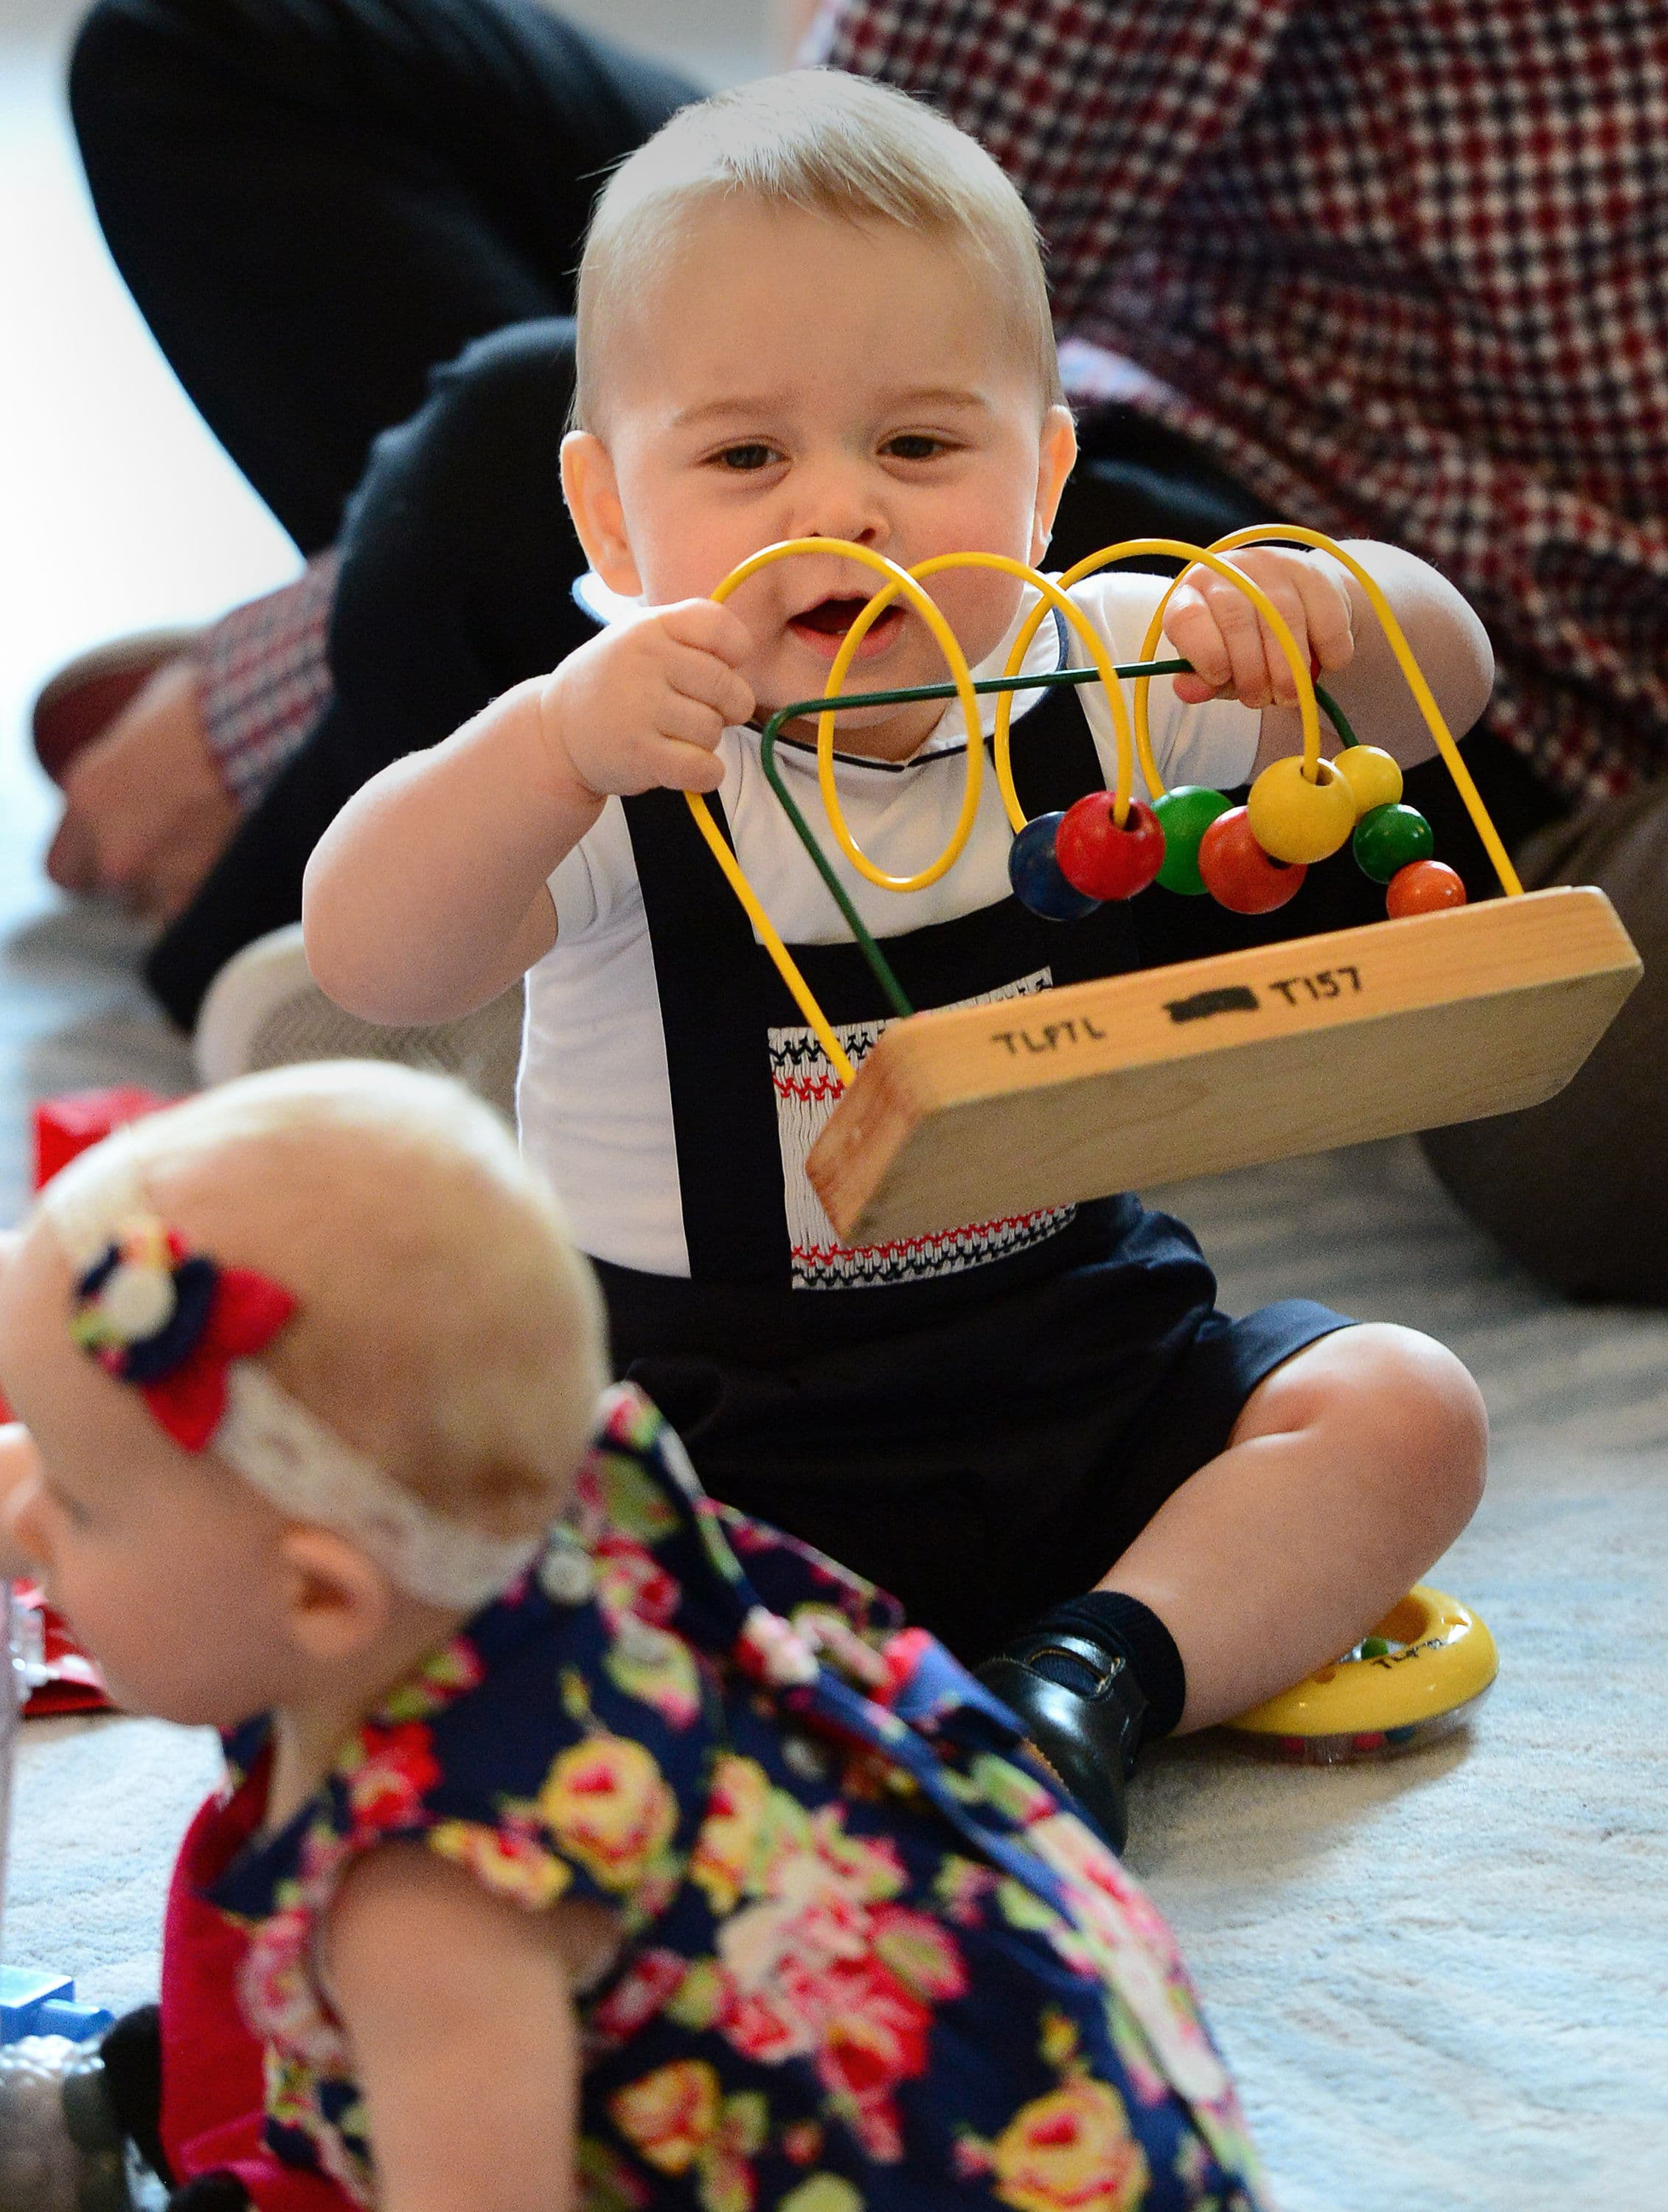 Prince George playing with a toy